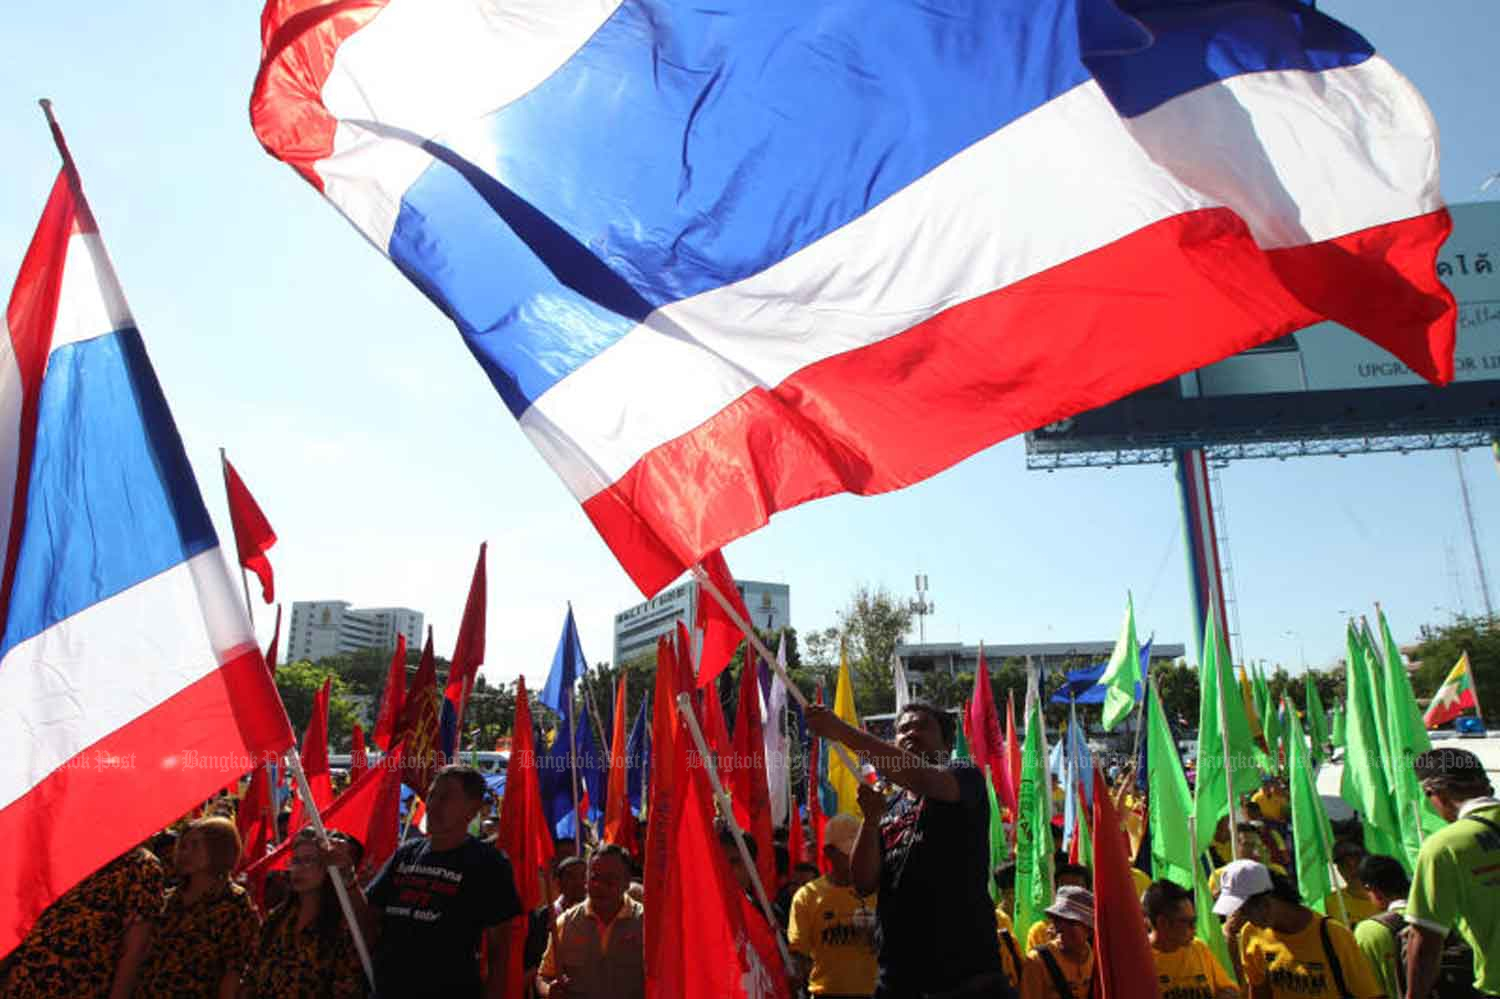 Workers' representatives gather in Klong Toey district, Bangkok, on May 1 last year,  National Labour Day. (Photo: Wichan Charoenkiatpakul)